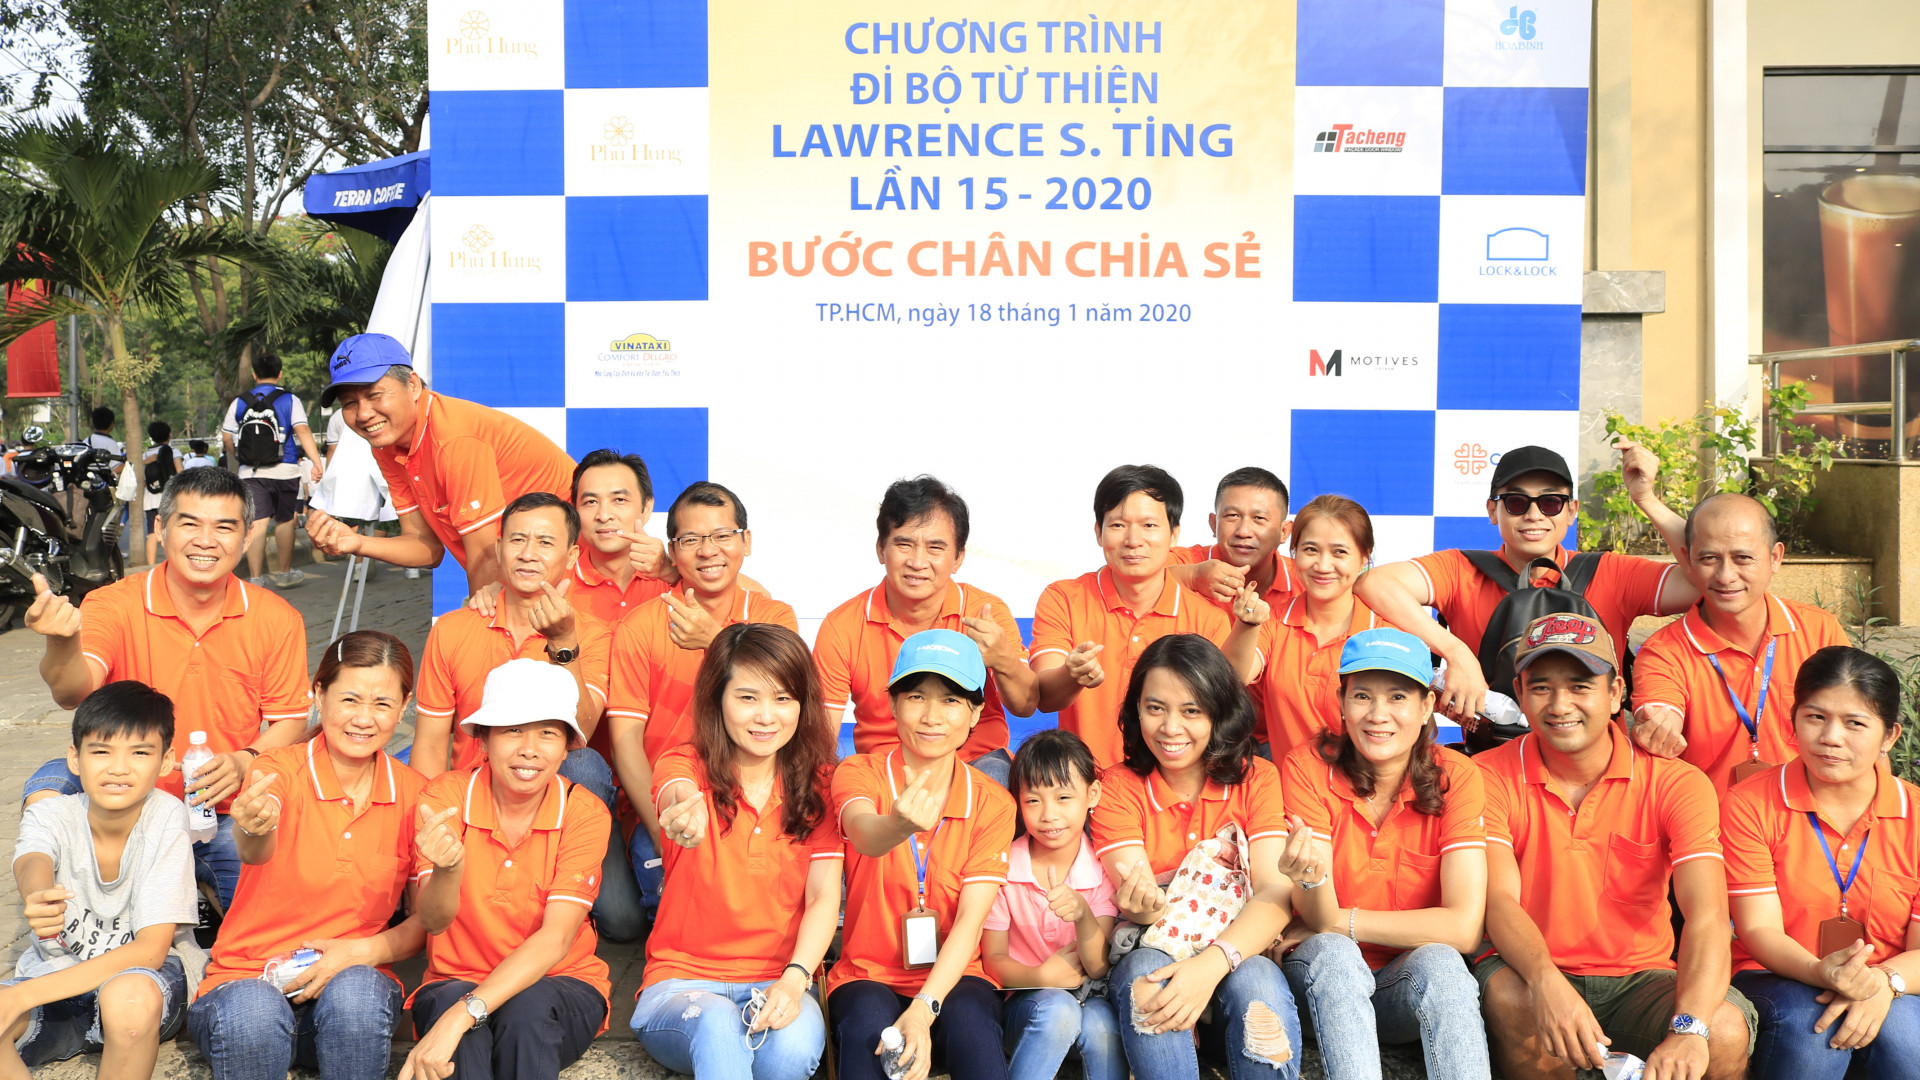 Lawrence S. Ting Charity Walk